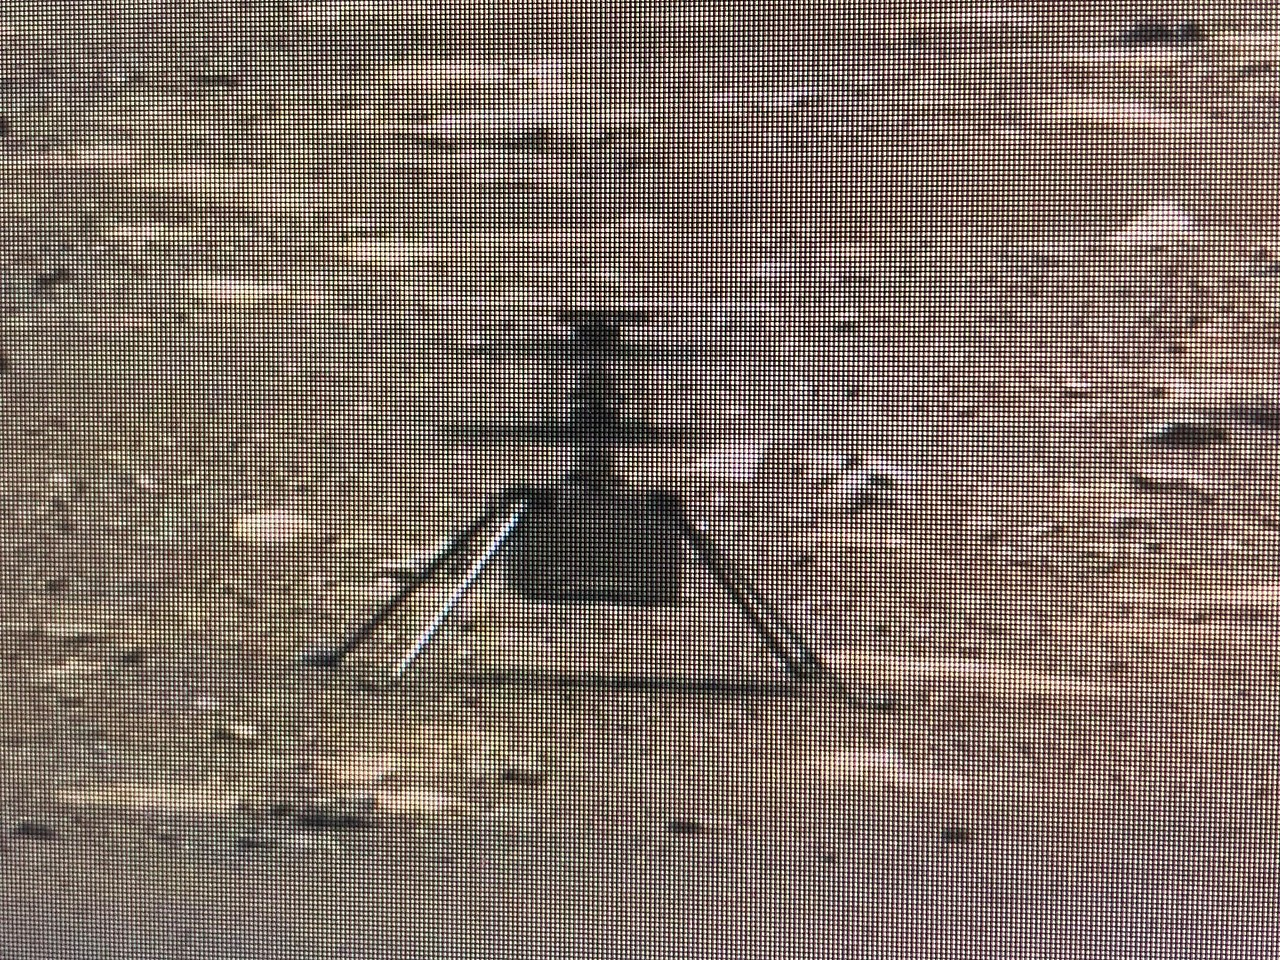 Mars helicopter on Earth